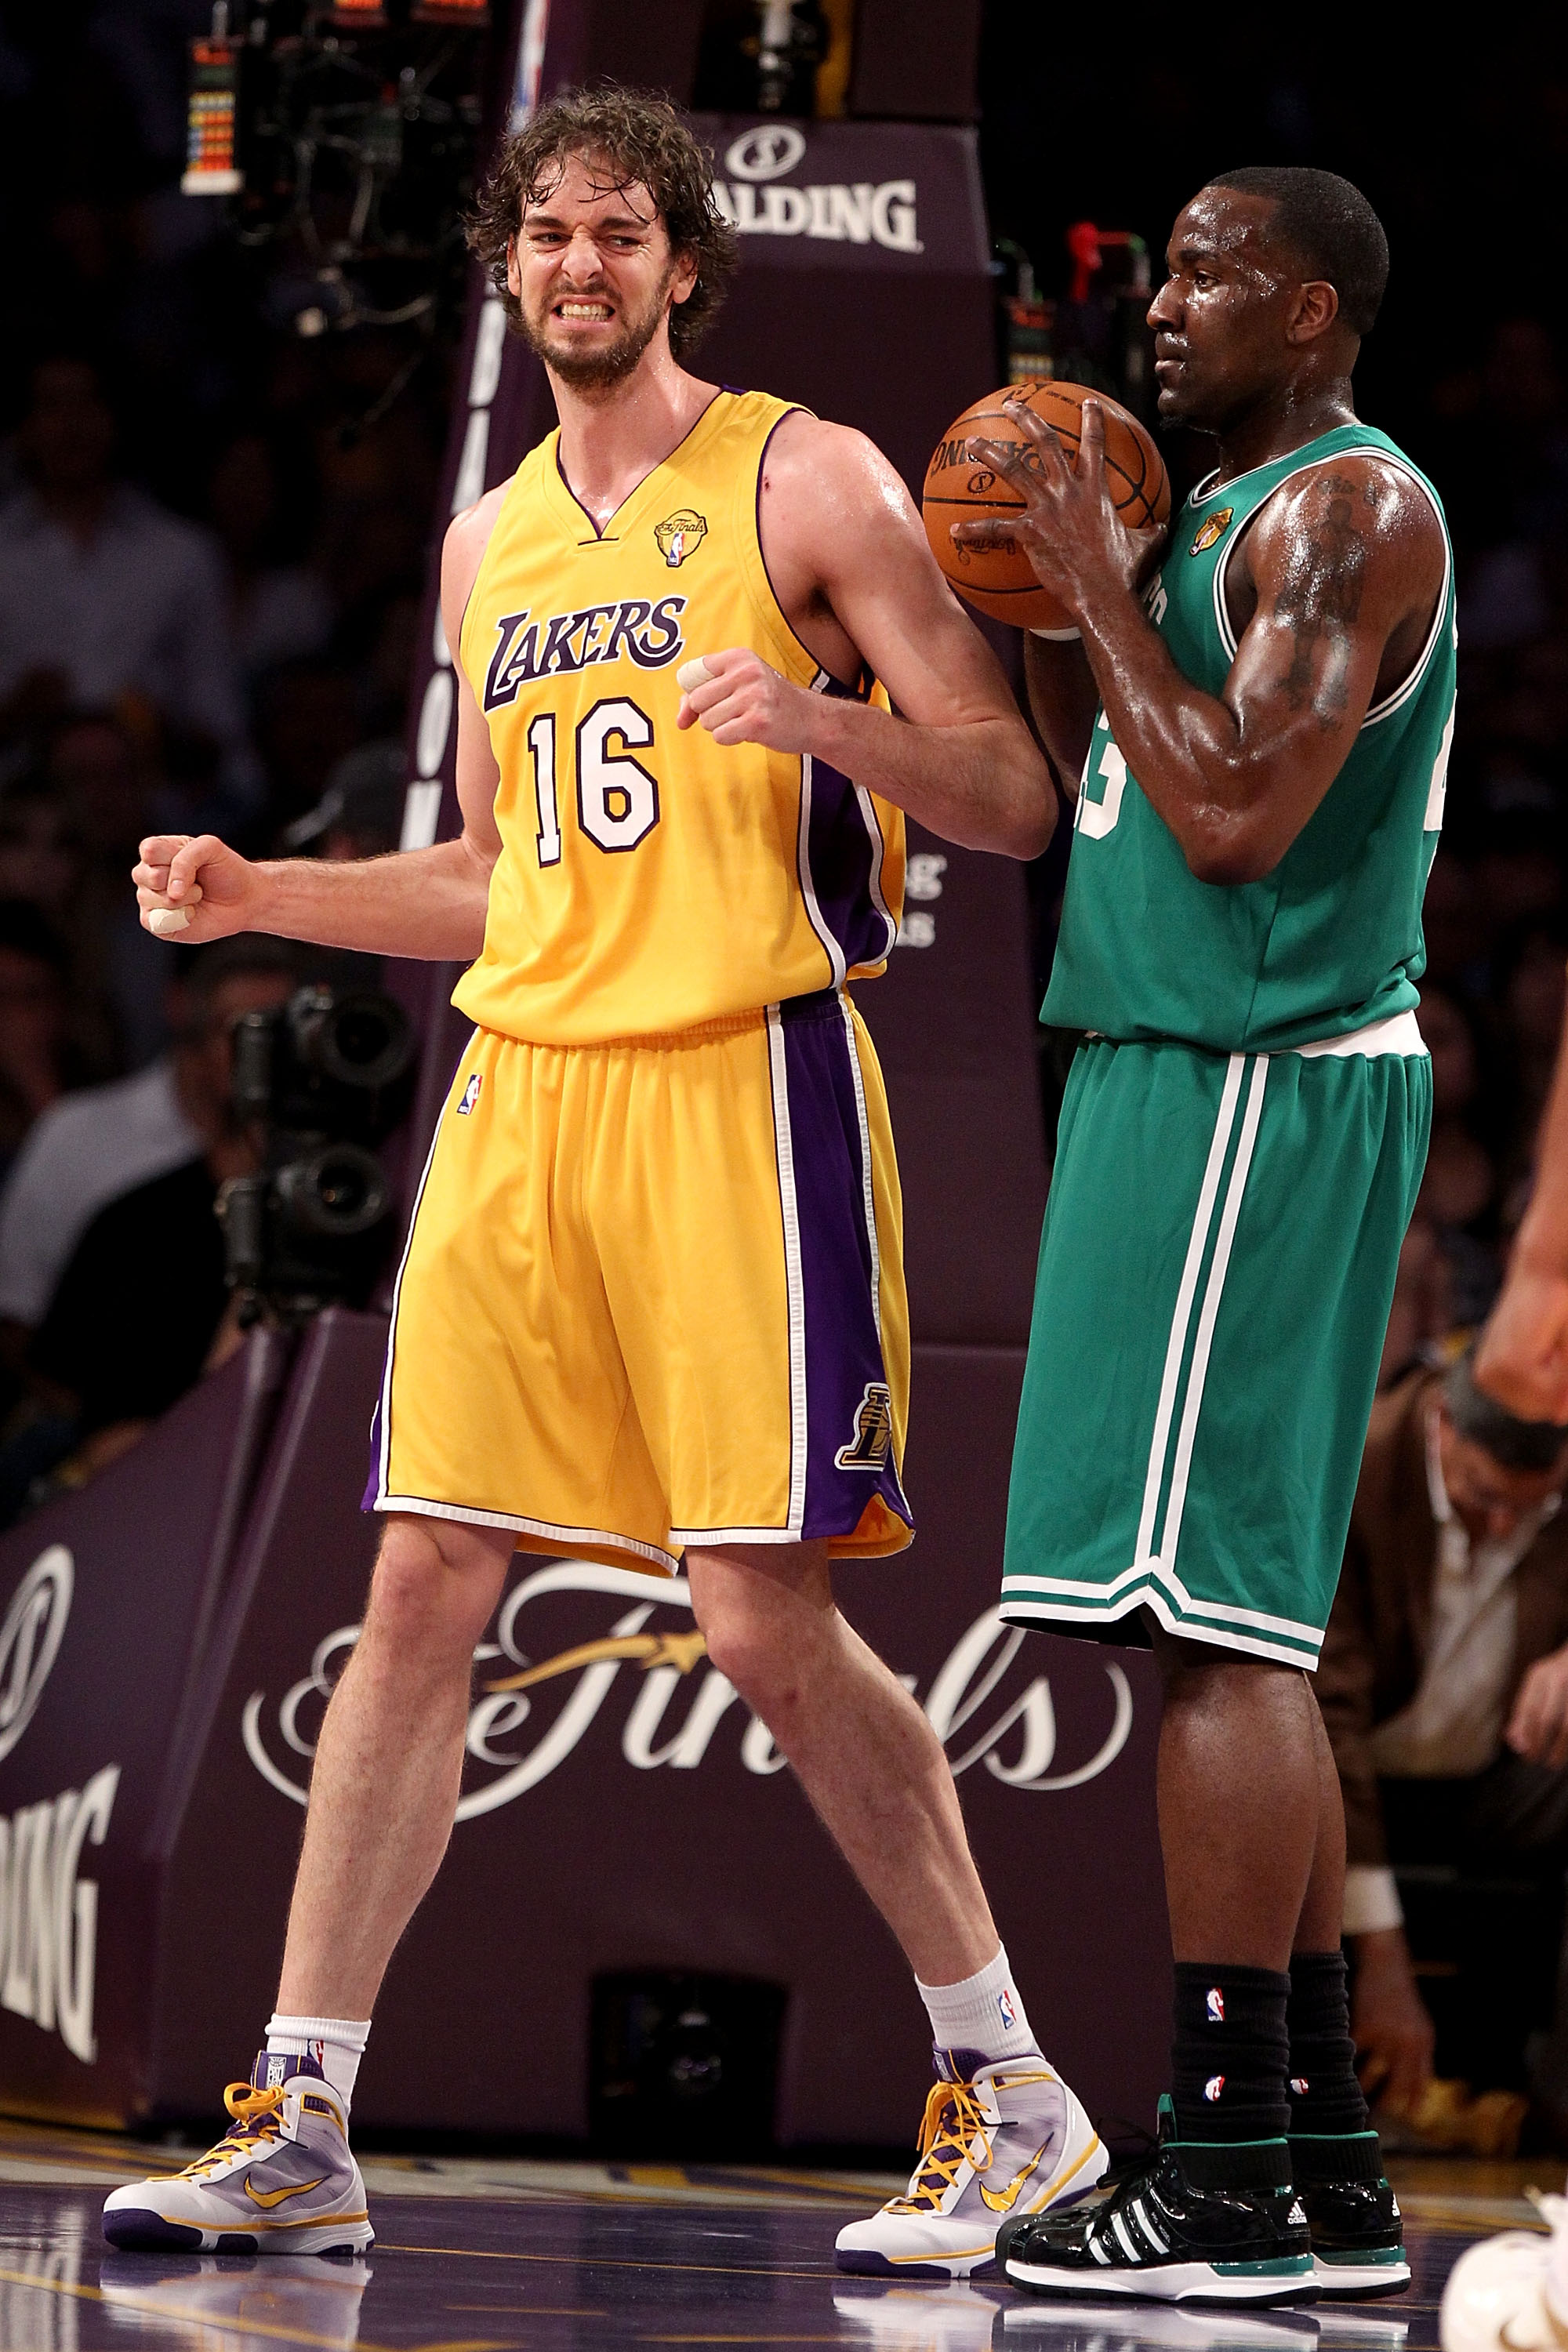 LOS ANGELES, CA - JUNE 15:  Pau Gasol #16 of the Los Angeles Lakers reacts alongside Kendrick Perkins #43 of the Boston Celtics in the first period of Game Six of the 2010 NBA Finals at Staples Center on June 15, 2010 in Los Angeles, California.  NOTE TO